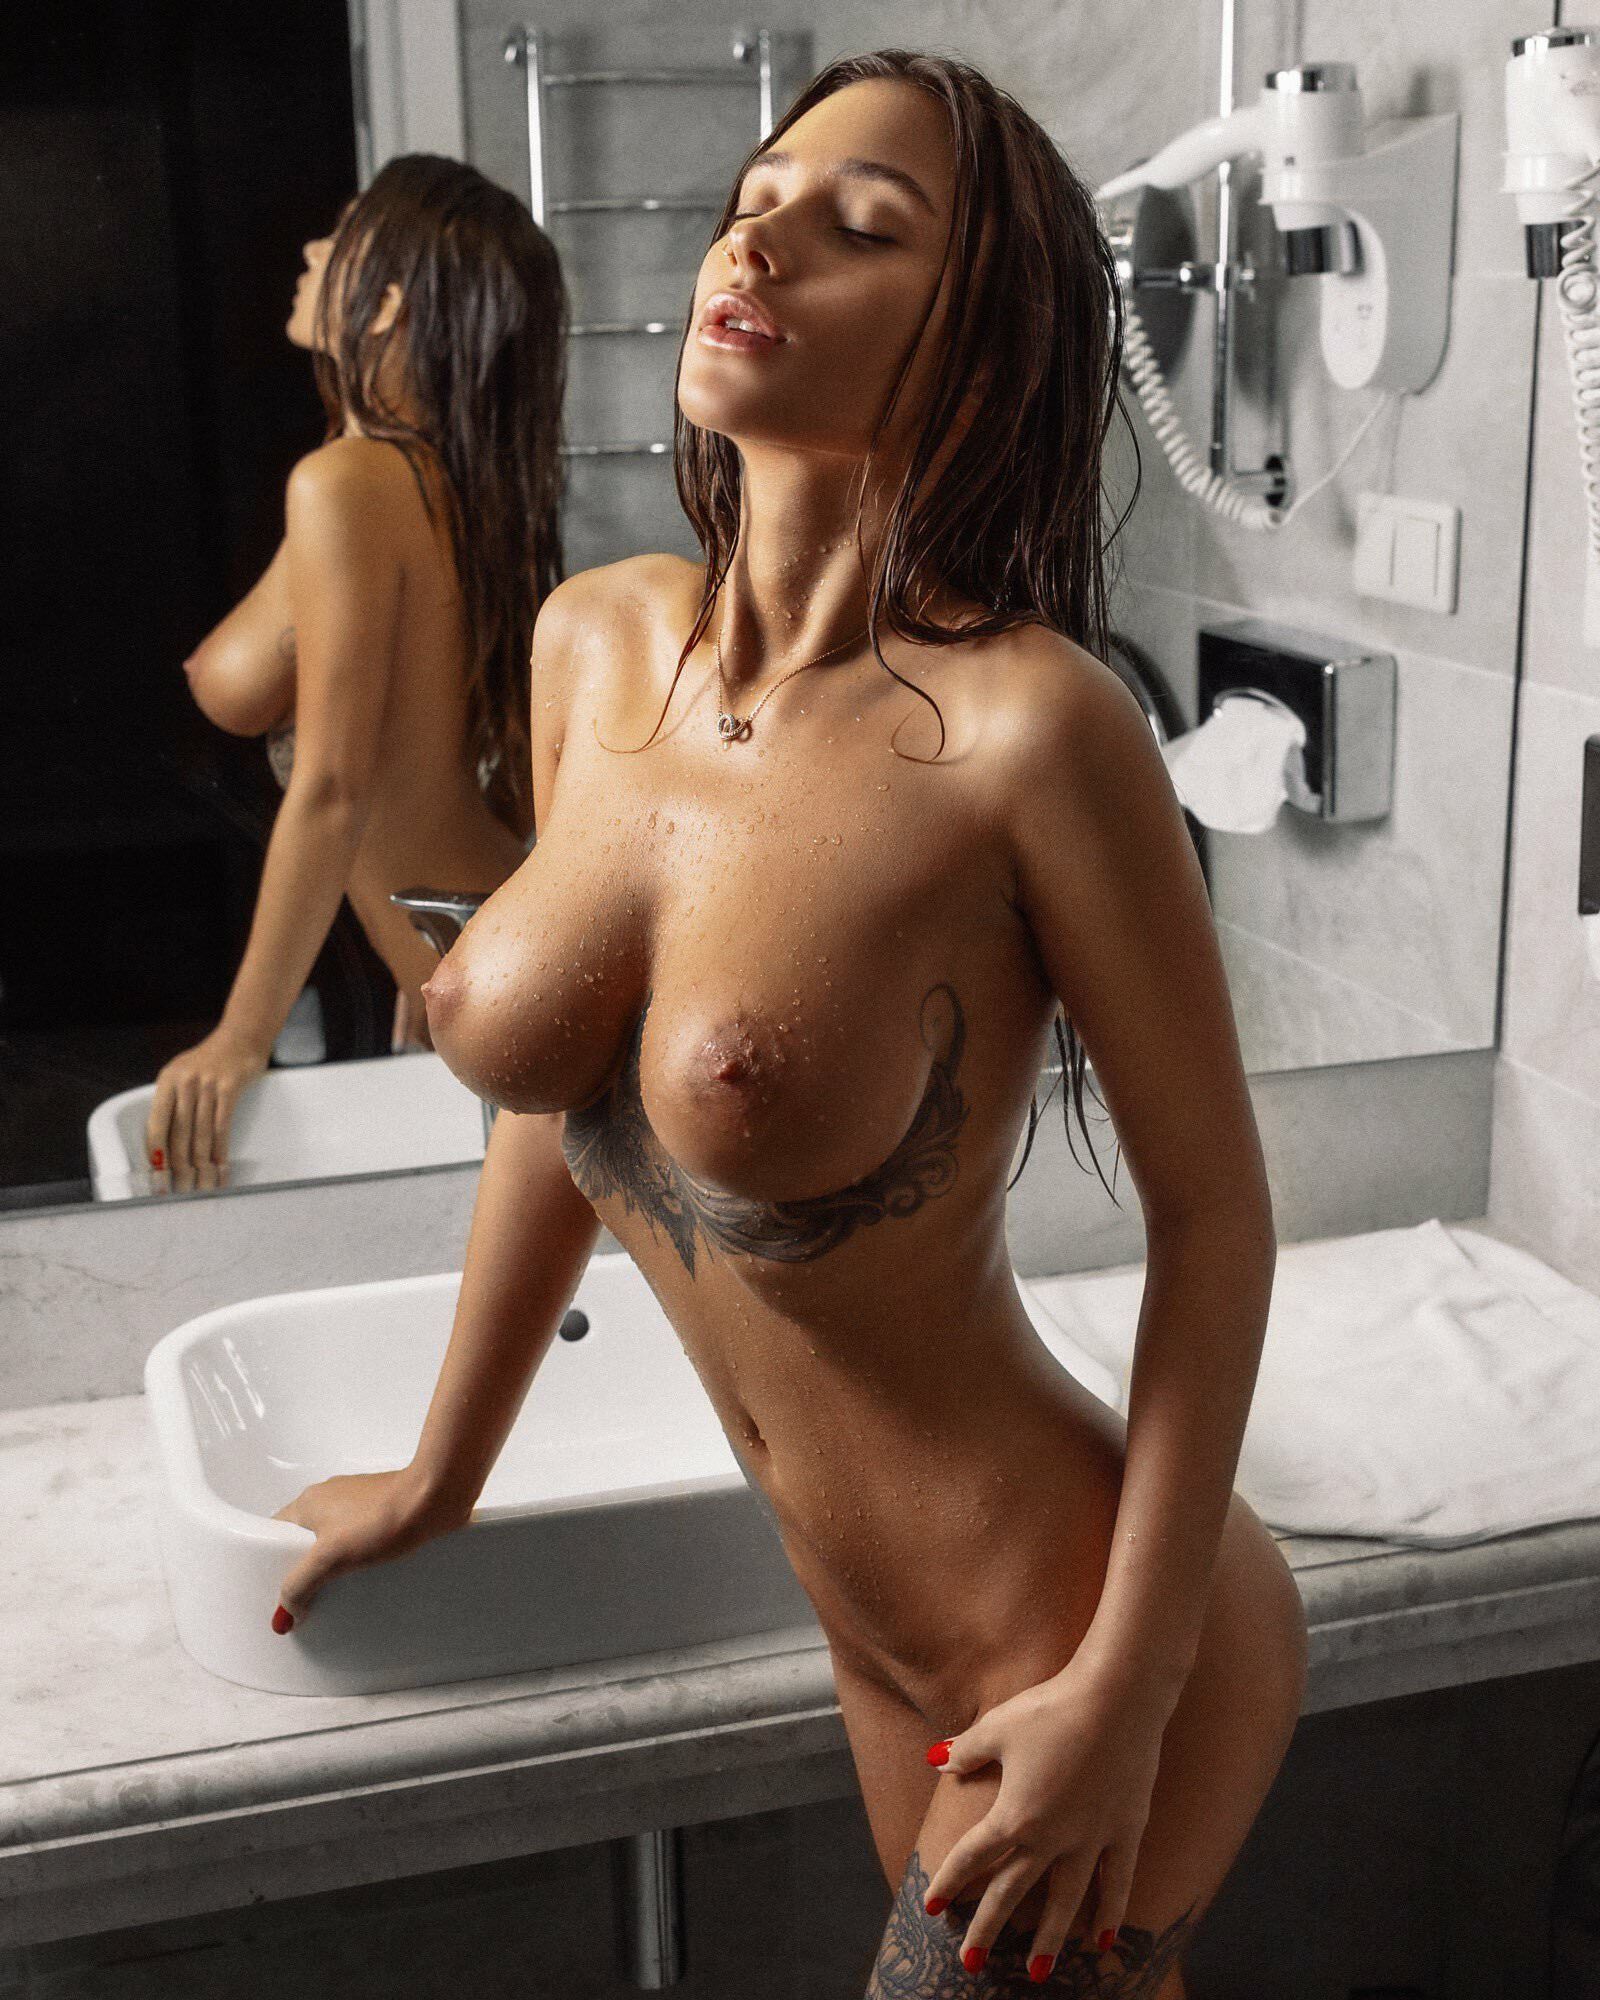 Kristina Shcherbinina nude: 22 photos